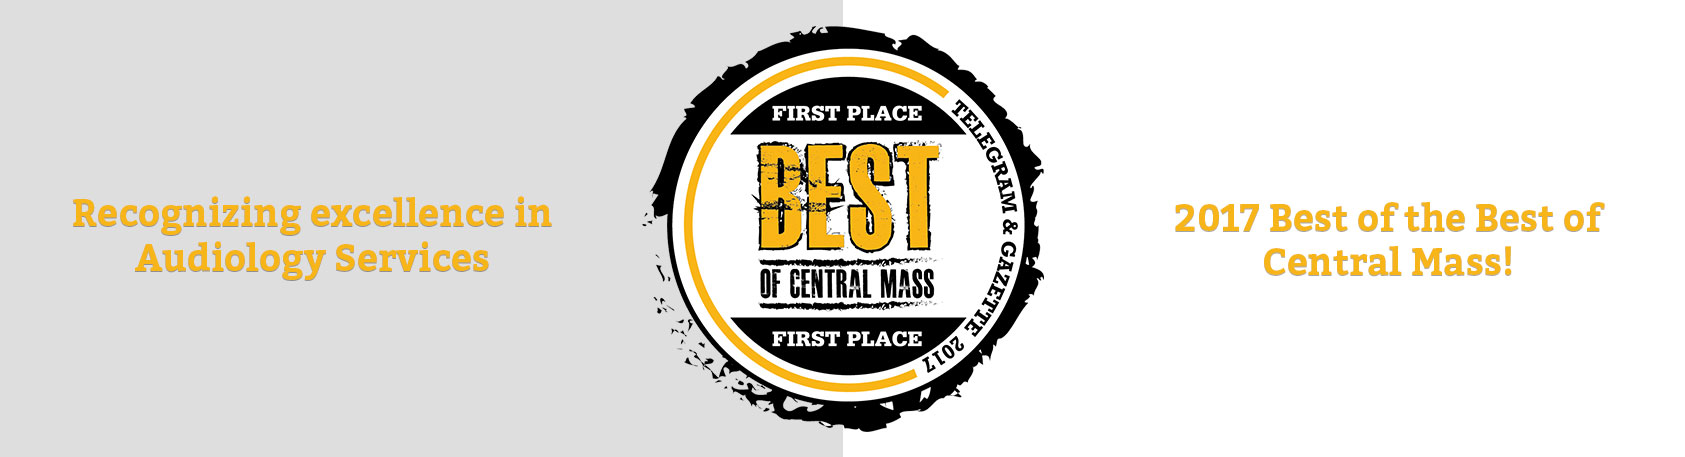 Best of Central Mass 2017 - Worcester, MA